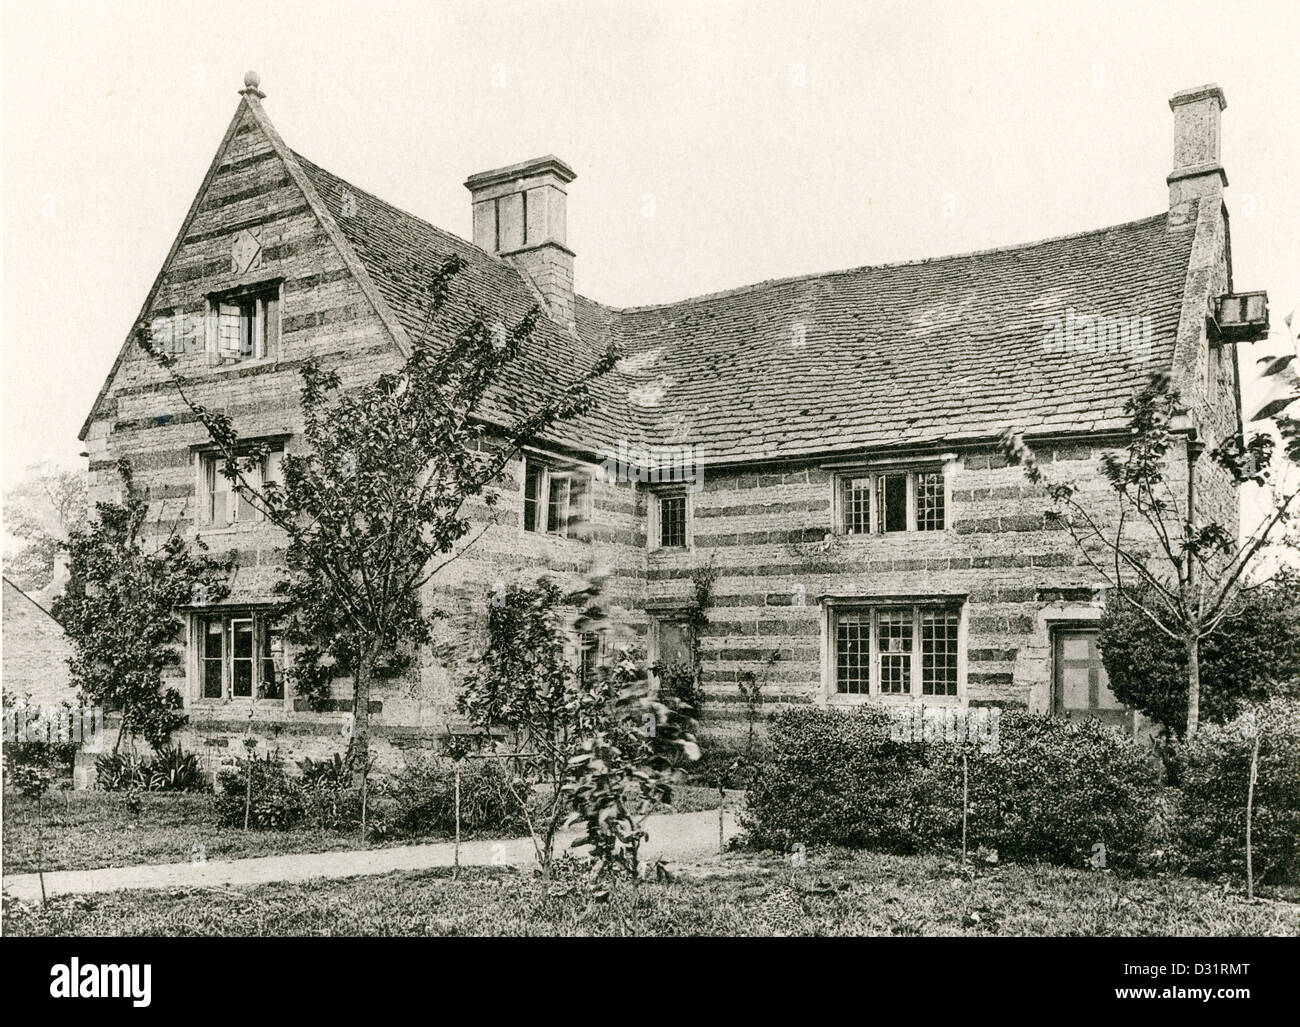 A collotype plate entitled ' The Manor House, Gretton, Northants.' scanned at high resolution from a book - Stock Image